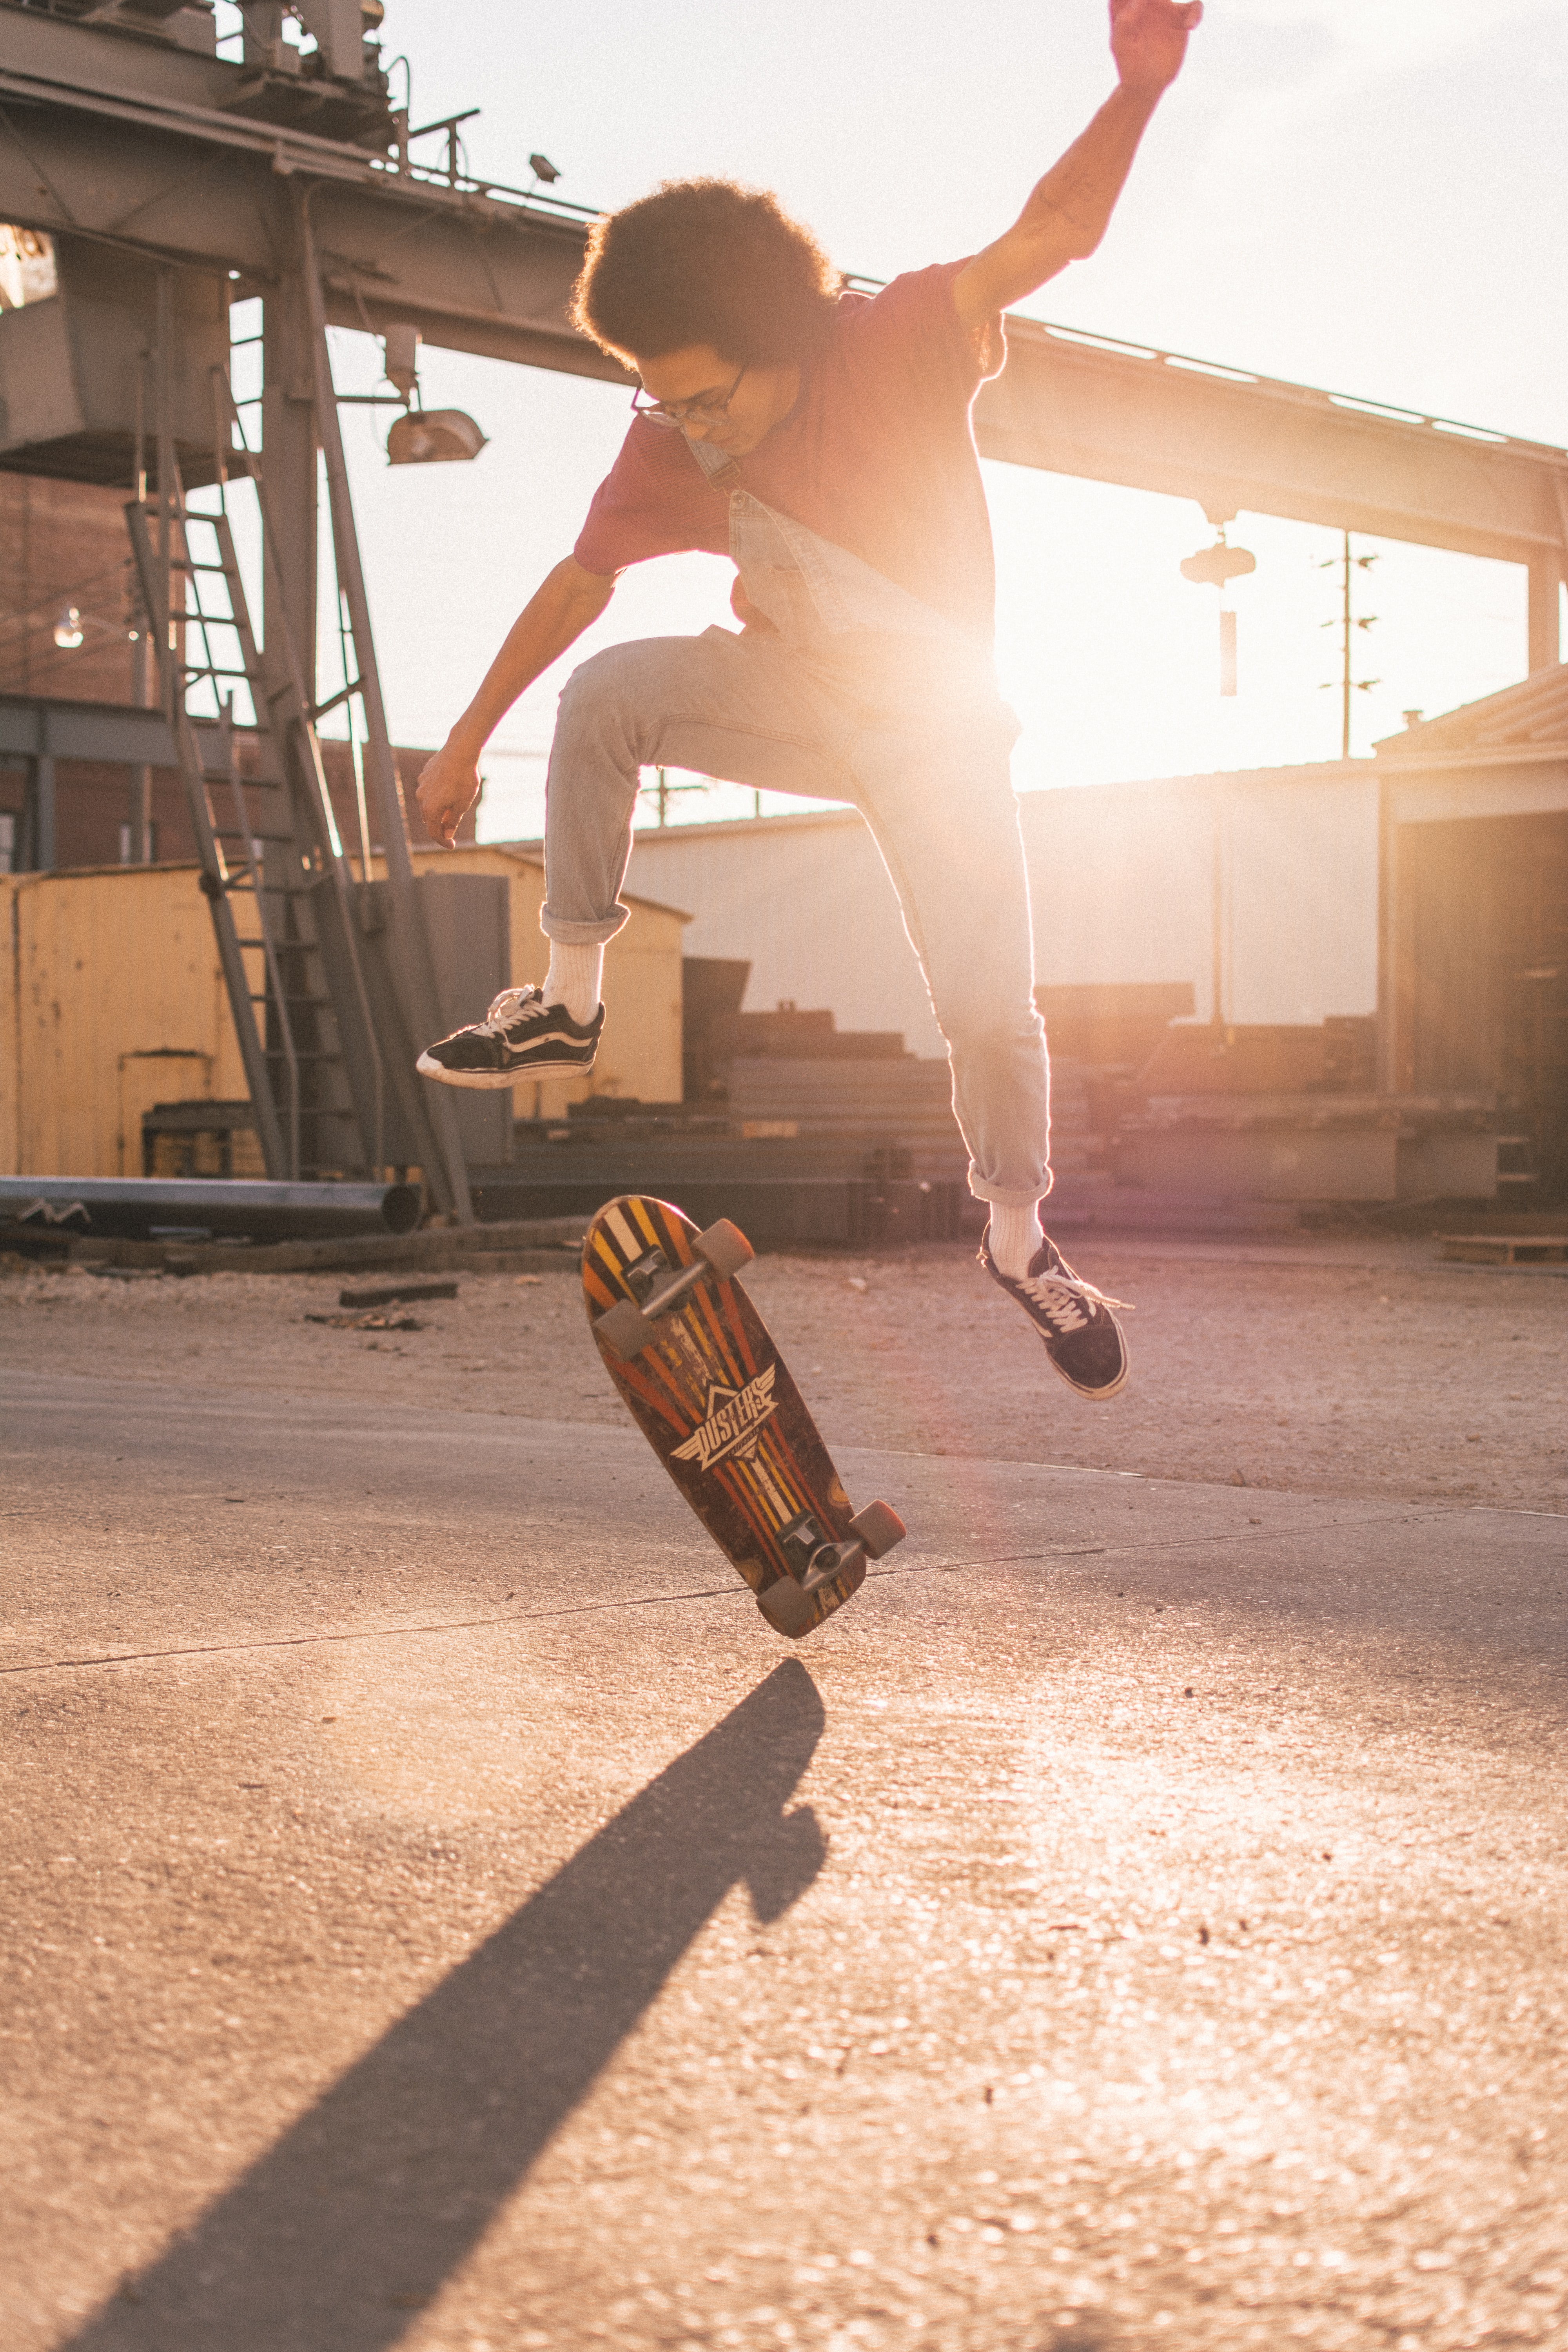 man skate boarding during daytime